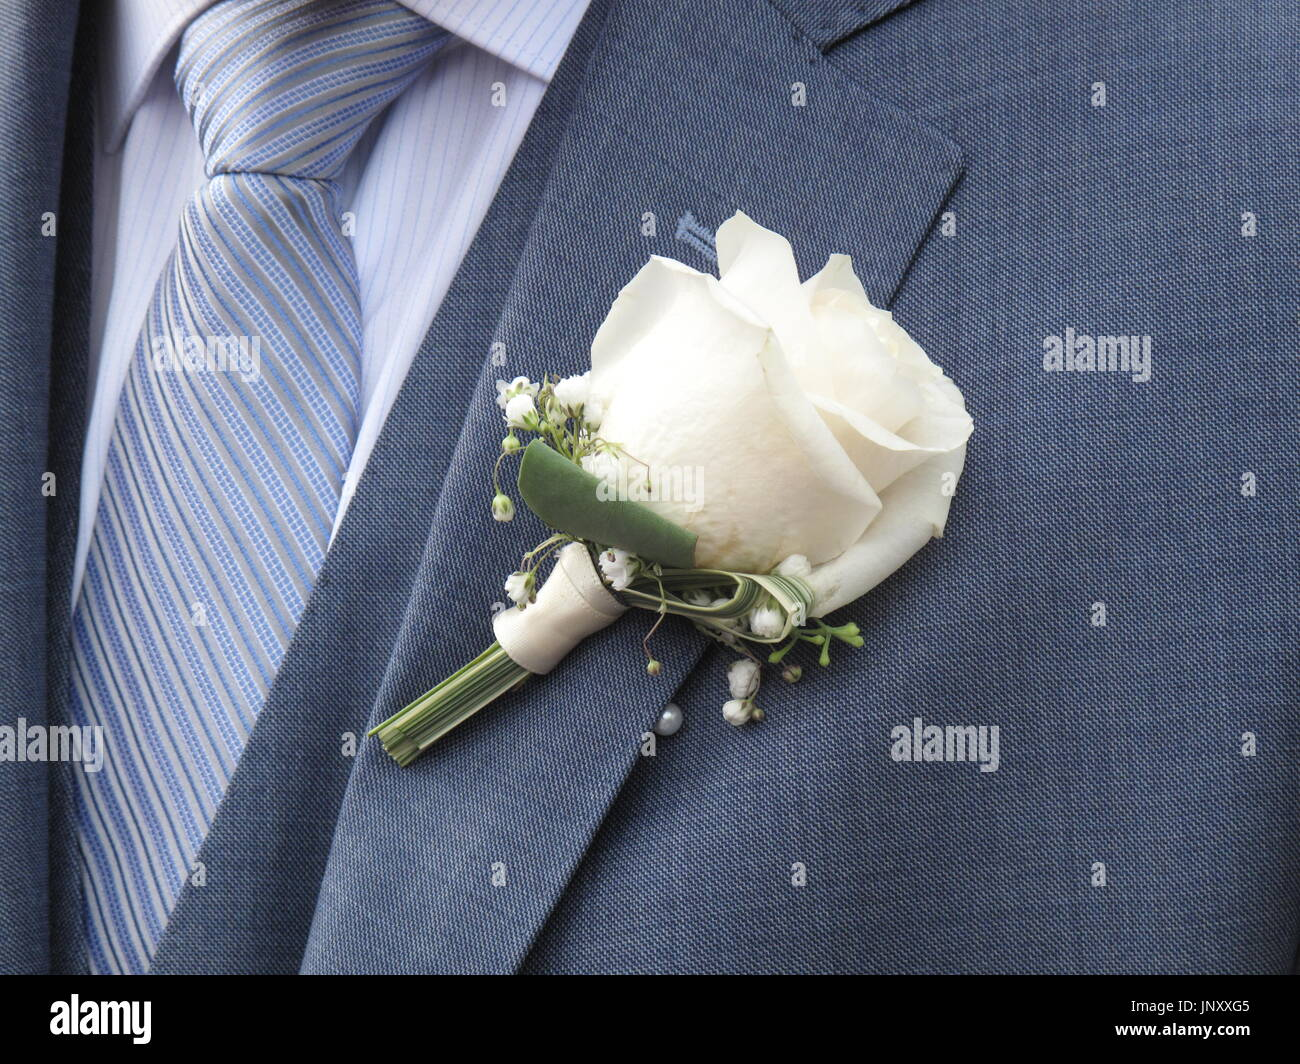 White rose on the lapel of a bridegroom Stock Photo